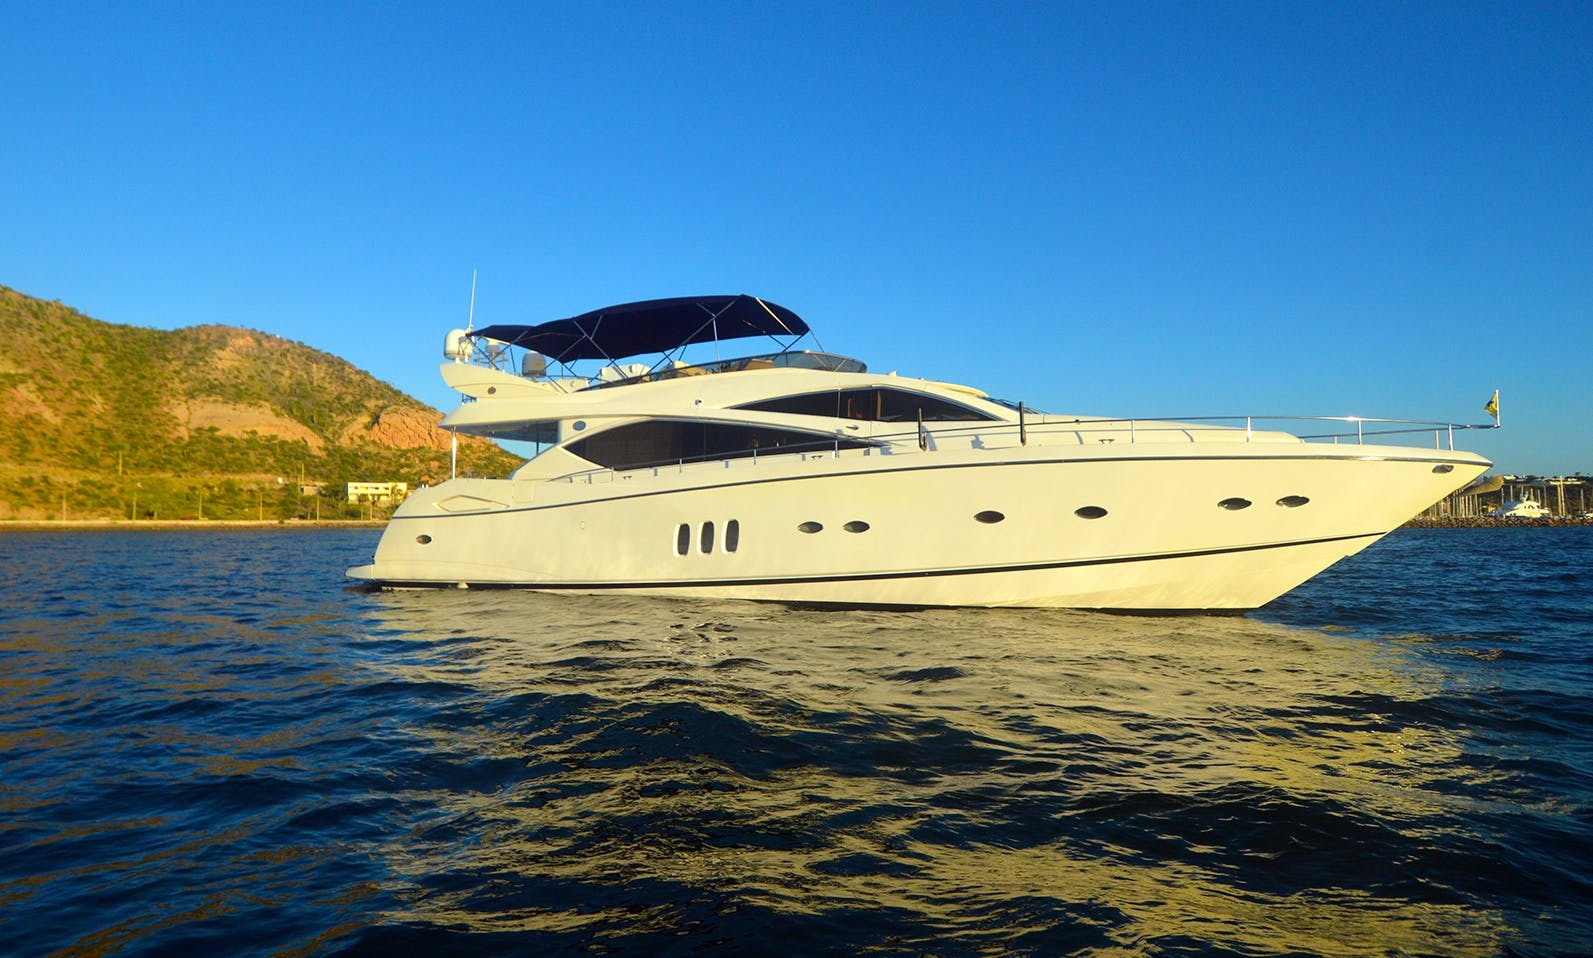 SUNSEEKER 80' LA PAZ MEXICO - LUXURY YACHT FOR CRUISING THE SEA OF CORTEZ